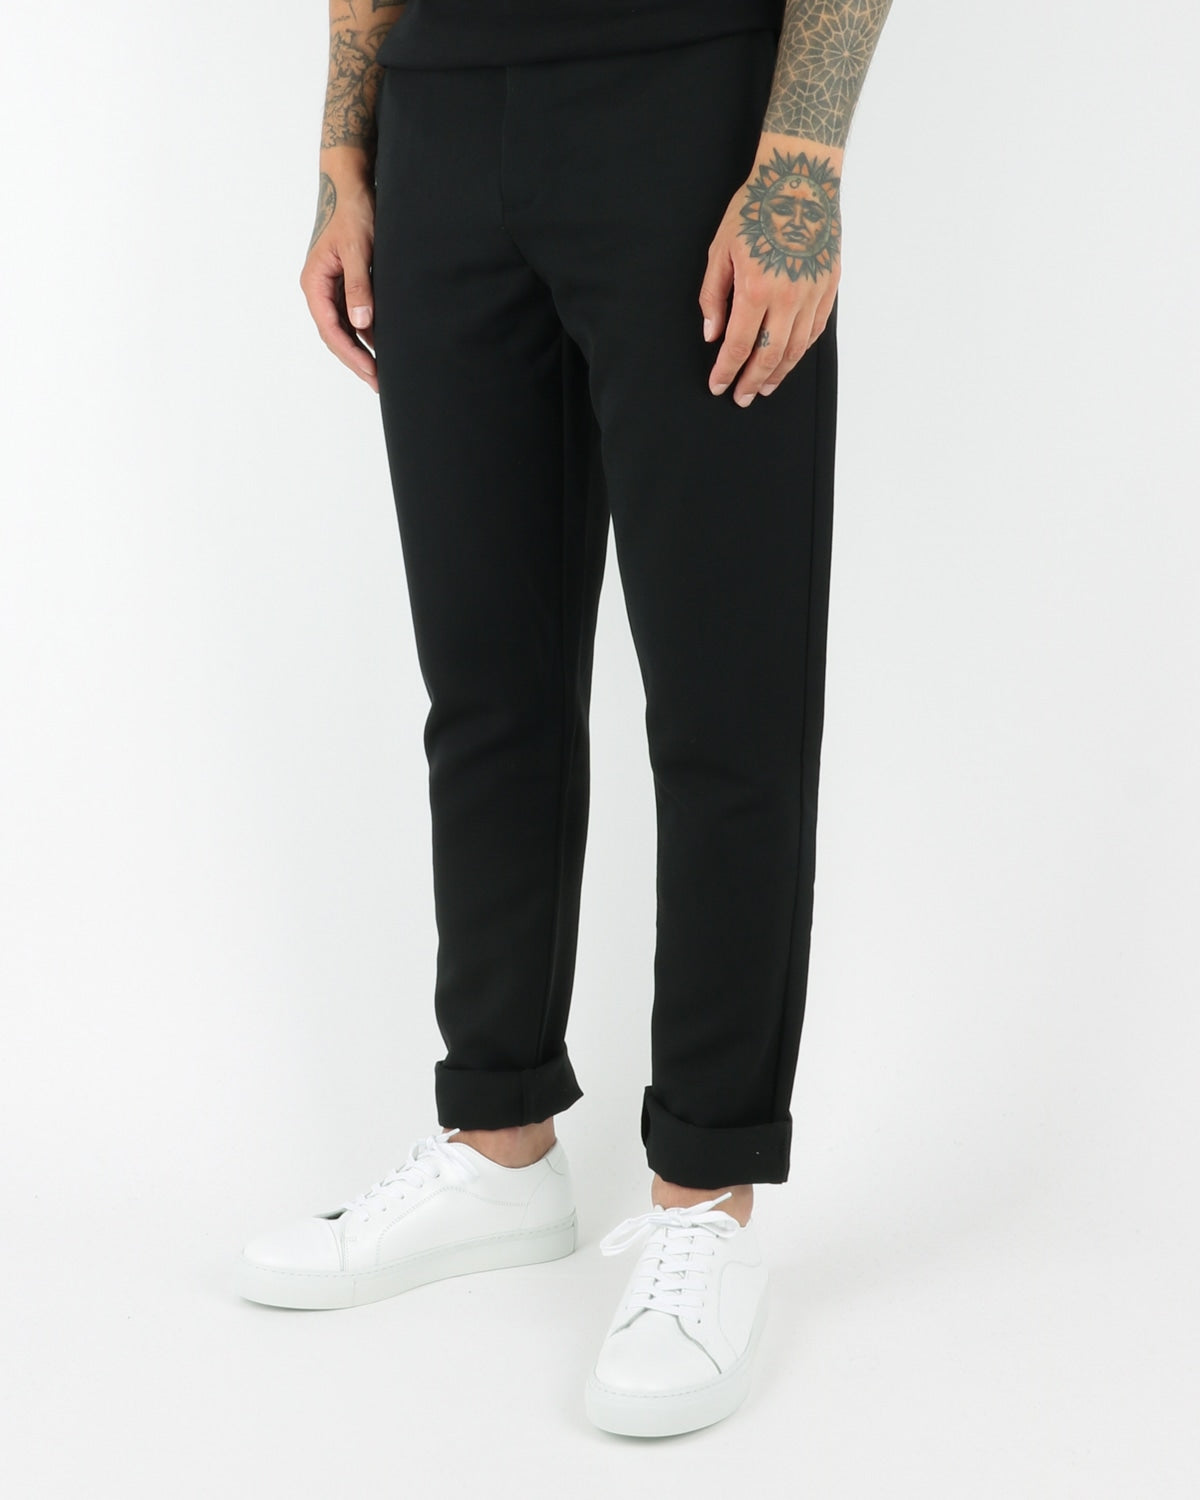 wac_wearecph_janzik pants_black_view_2_3